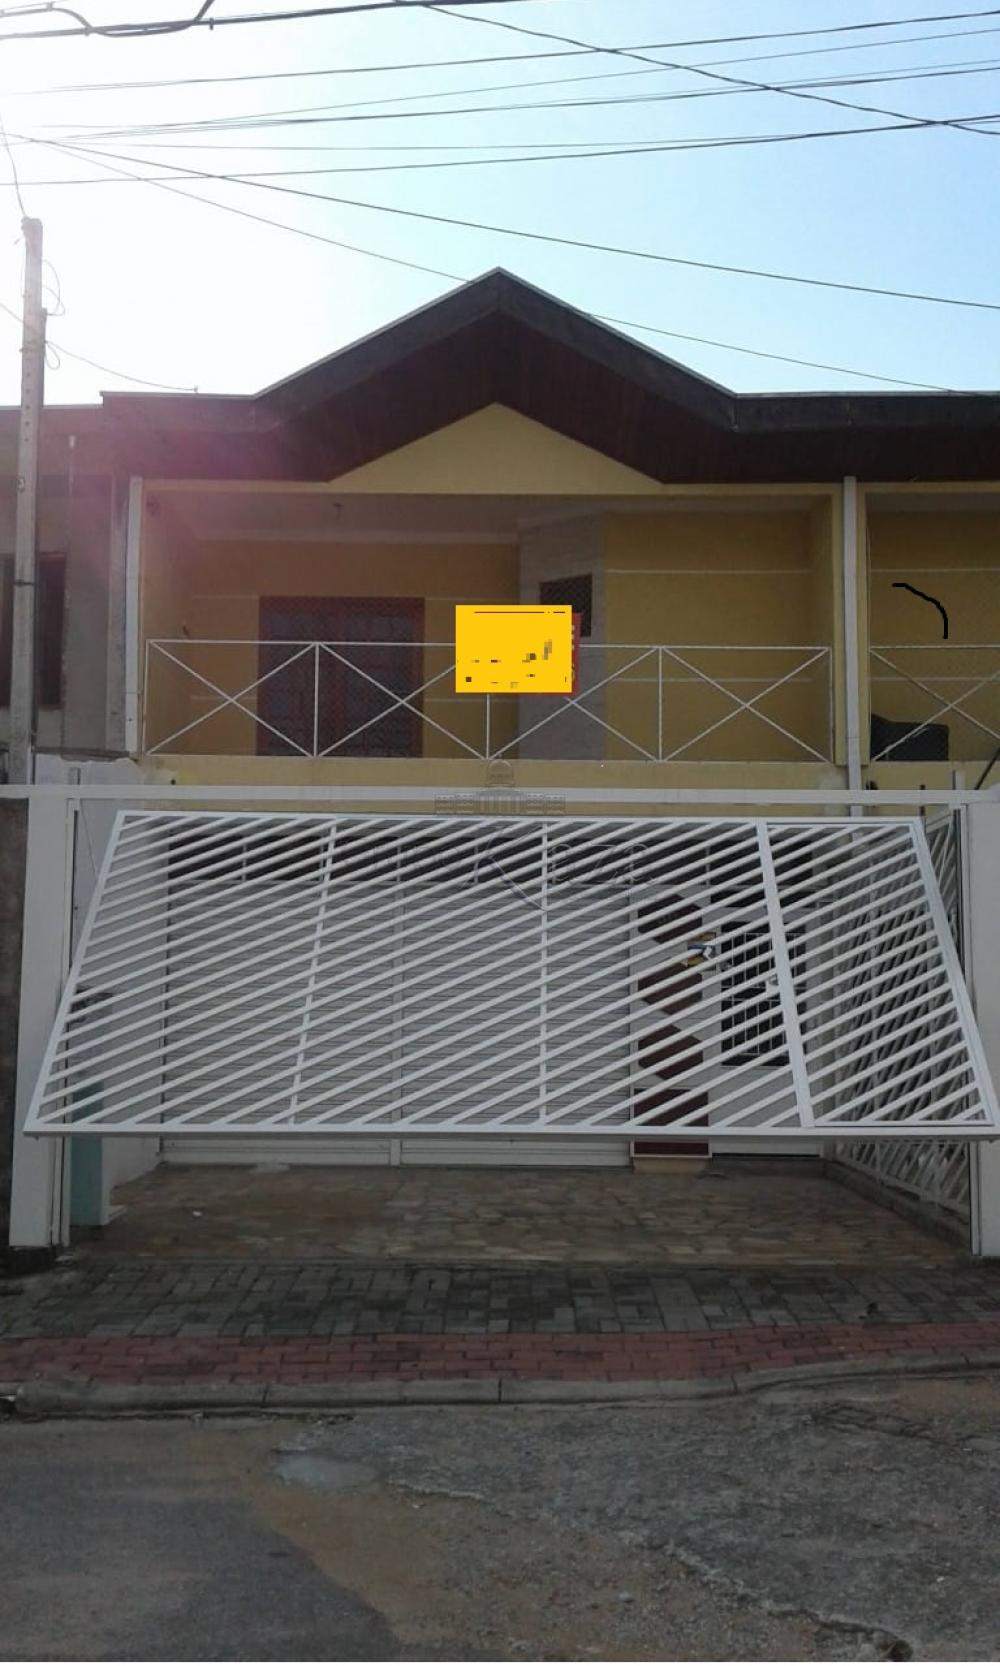 Sao Jose dos Campos Casa Venda R$530.000,00 3 Dormitorios 1 Suite Area do terreno 150.00m2 Area construida 225.00m2